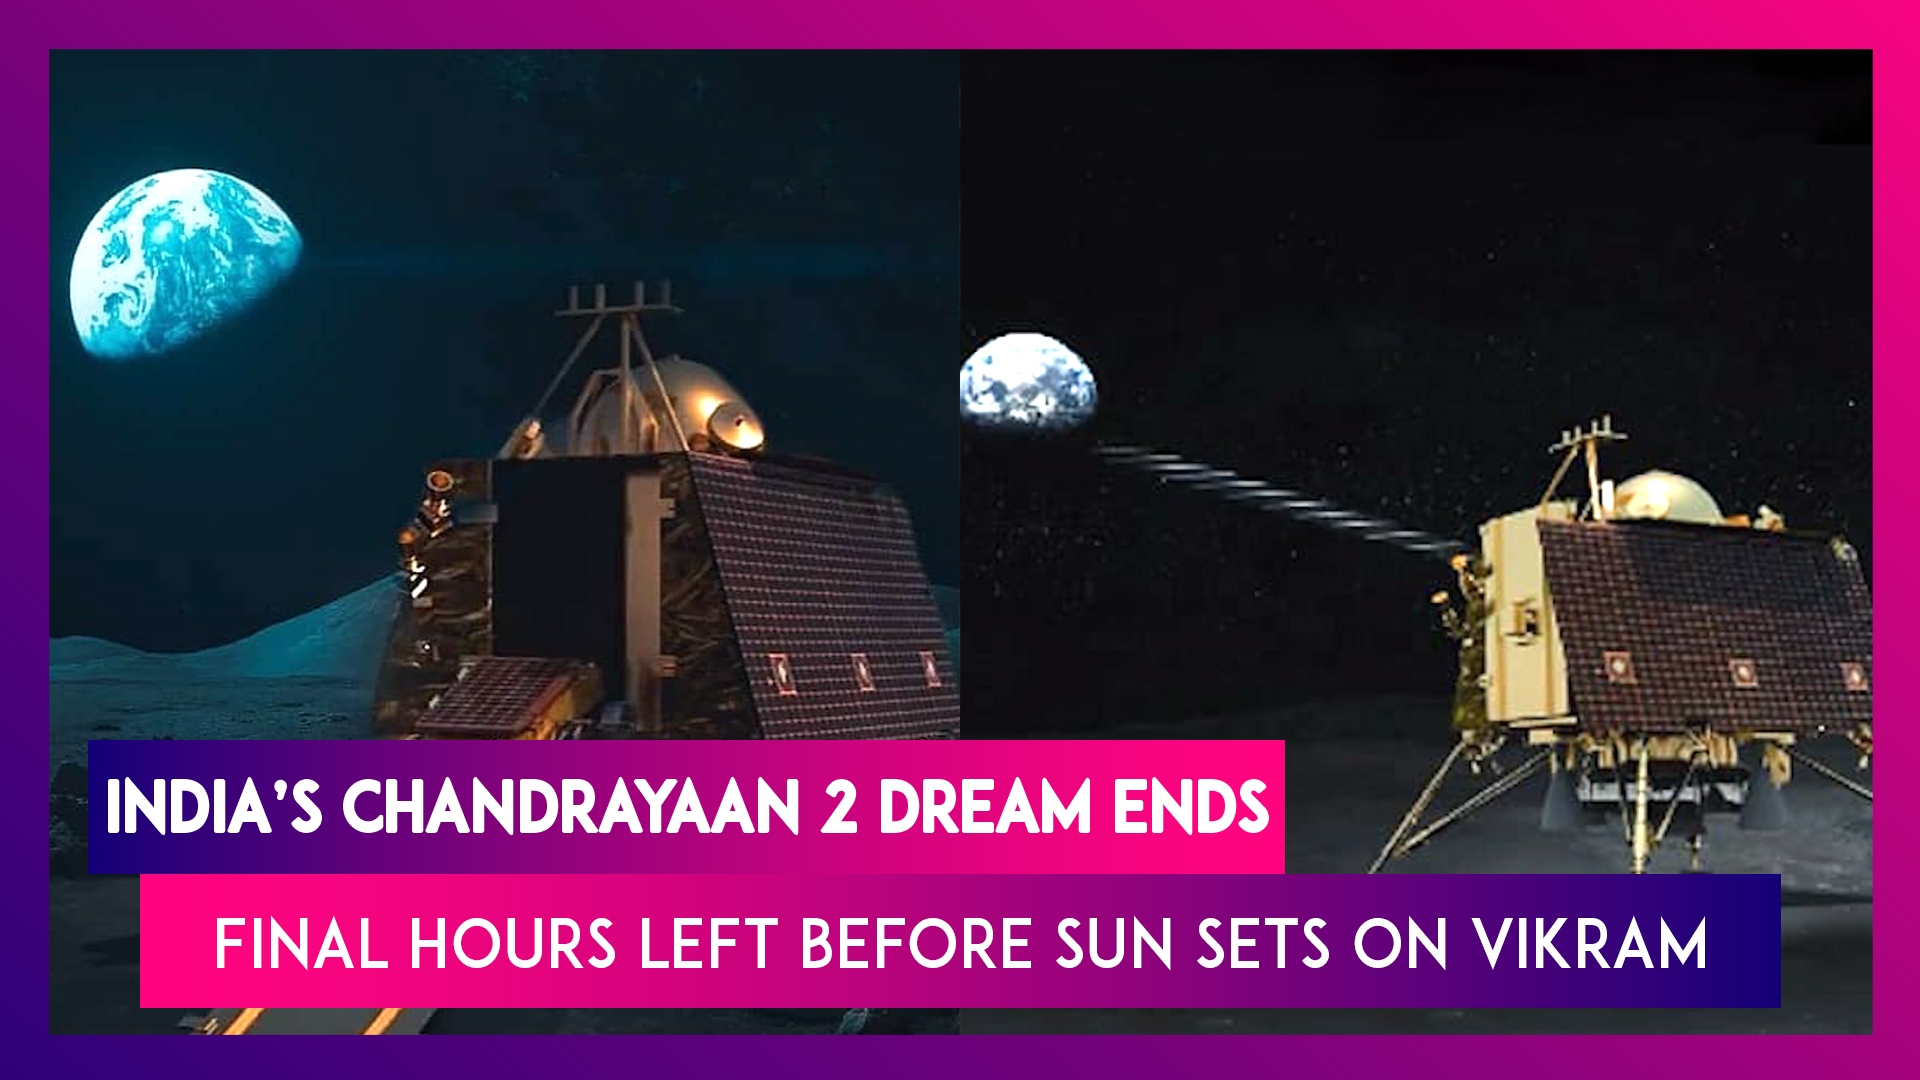 India's Chandrayaan 2 Dream Set To End, Final Hours Left Before The Sun Sets On Vikram Lander